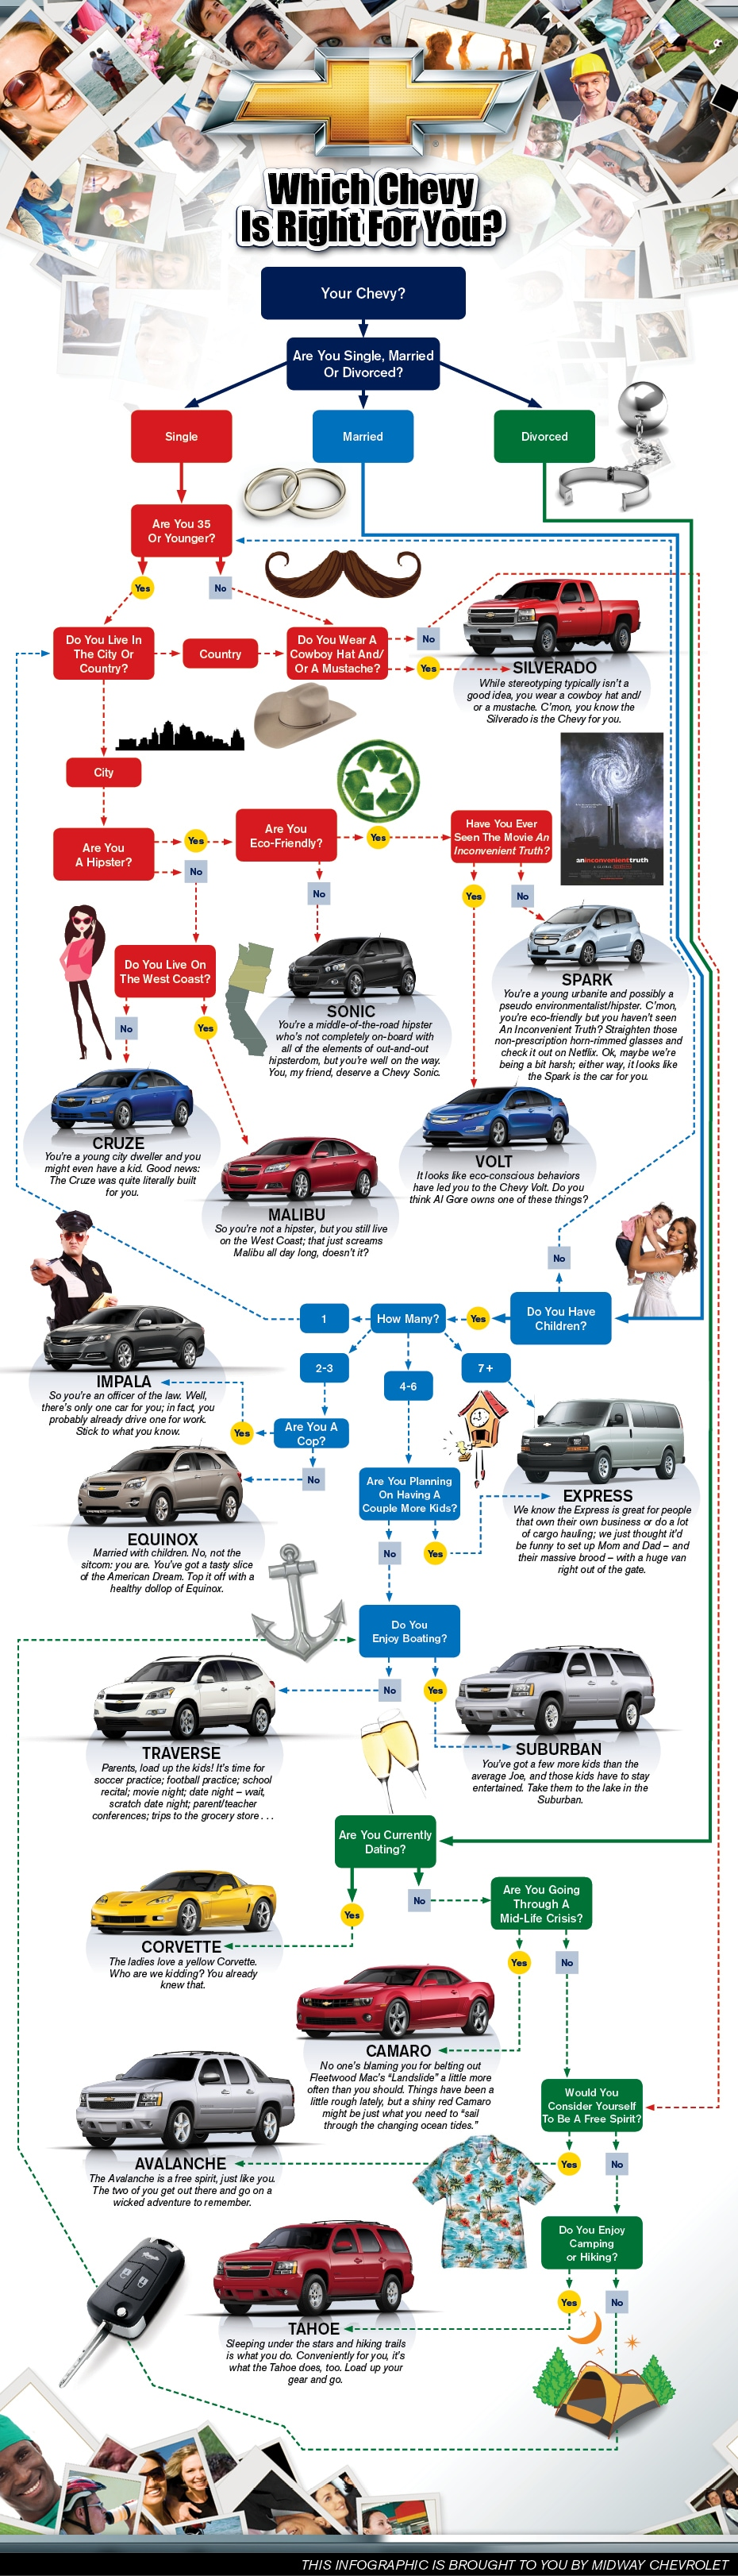 A Chevy Infographic: Which Chevy is Right for You?